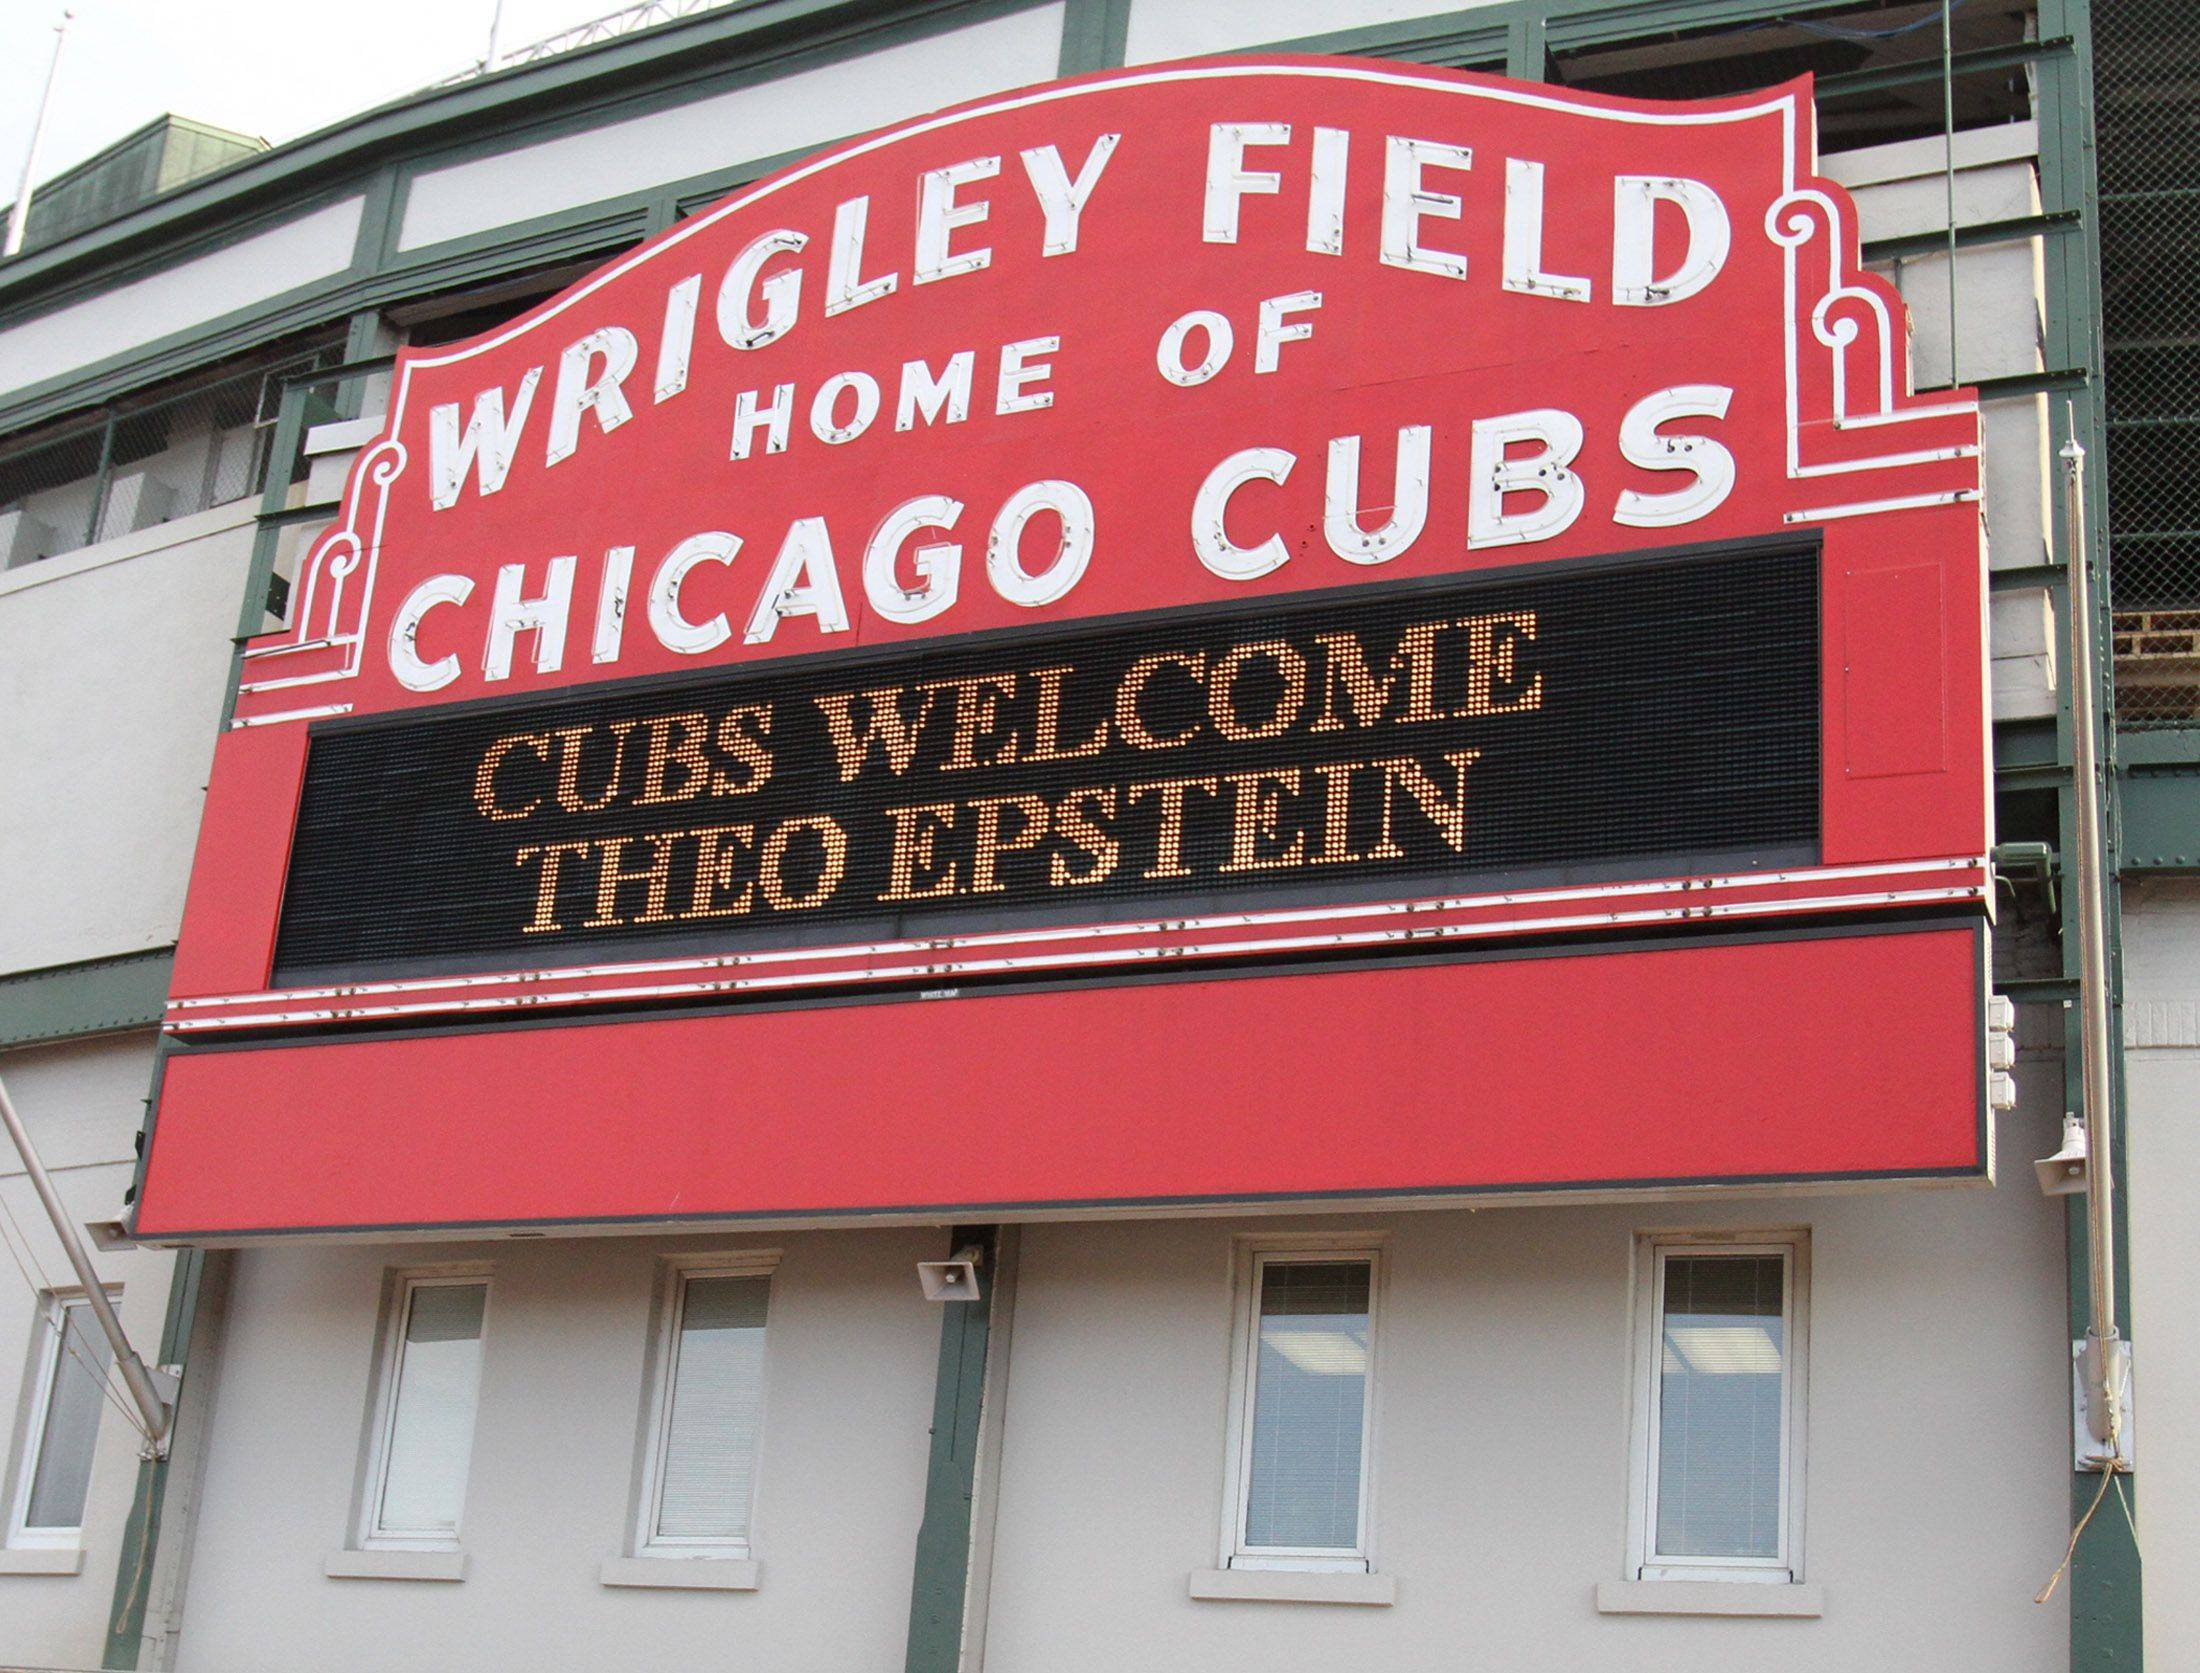 The Chicago Cubs stadium sign welcomes Theo Epstein to Wrigley Field in Chicago on Tuesday.